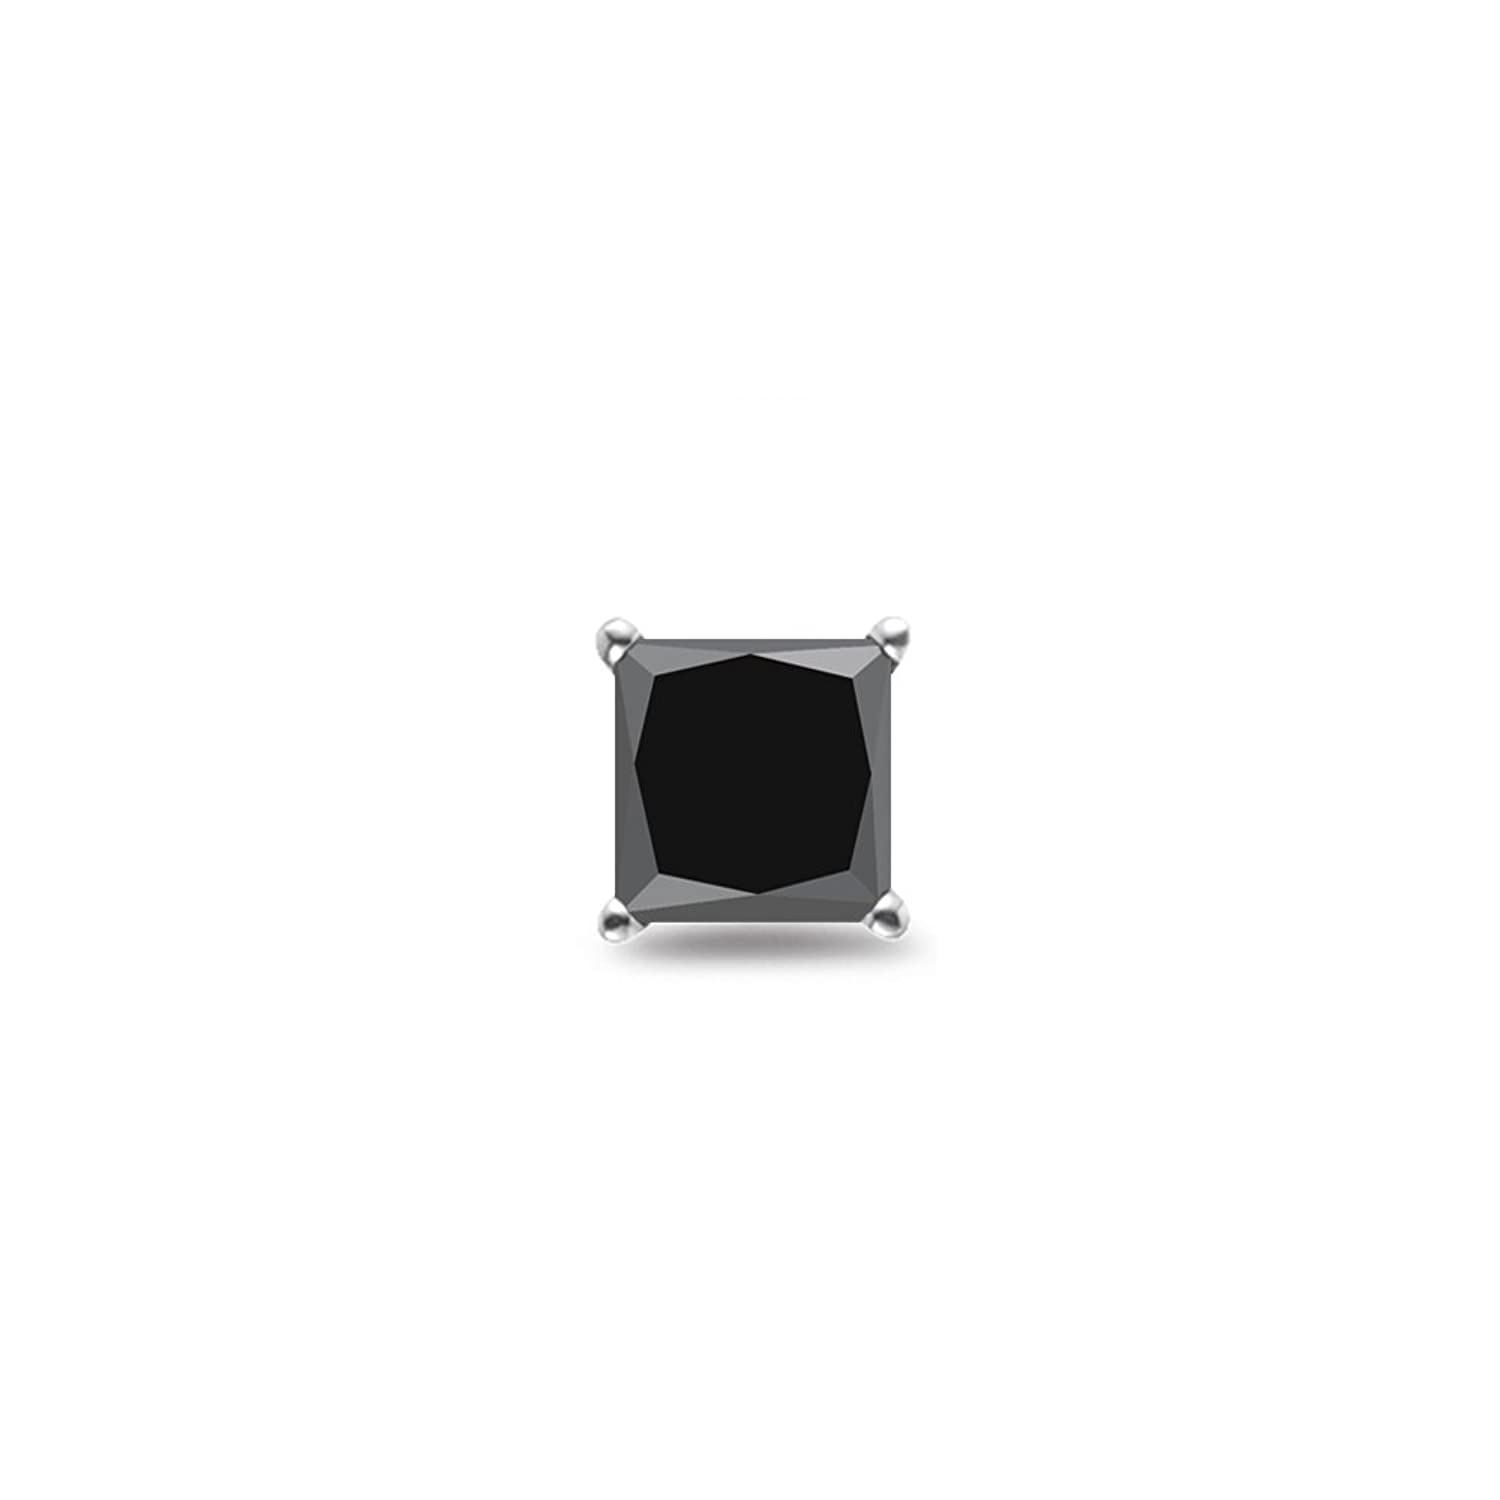 0.21-0.27 Cts of 2.50-3.00 mm AA Princess Black Diamond Mens Stud Earring in 14K White Gold - Valentine's Day Sale